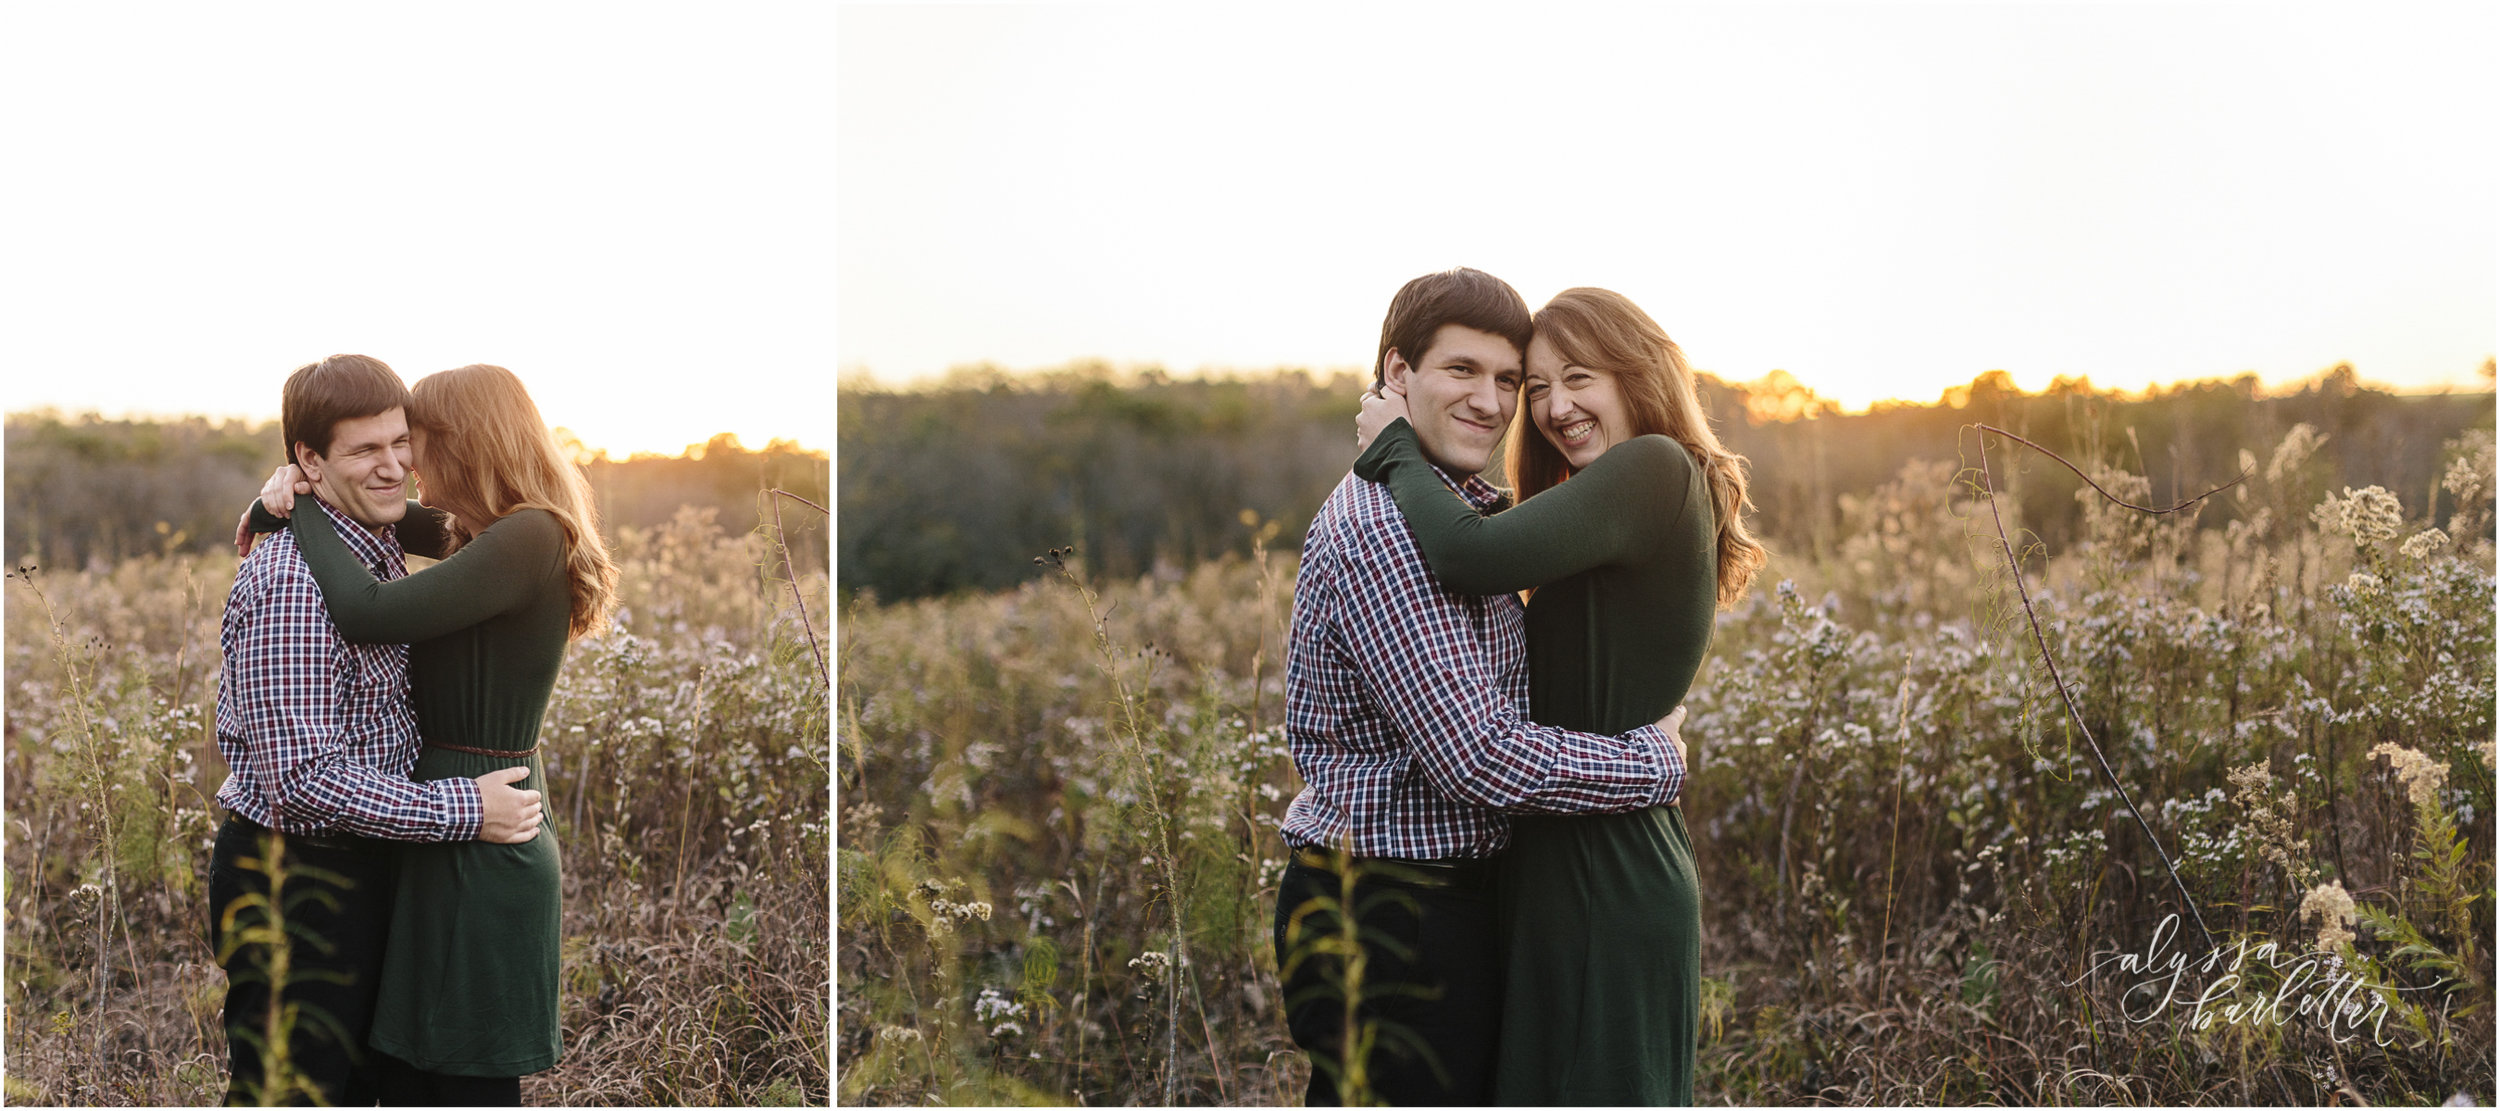 alyssa barletter photography olathe kansas engagement photos fall park jessica and kyle-1-16.jpg